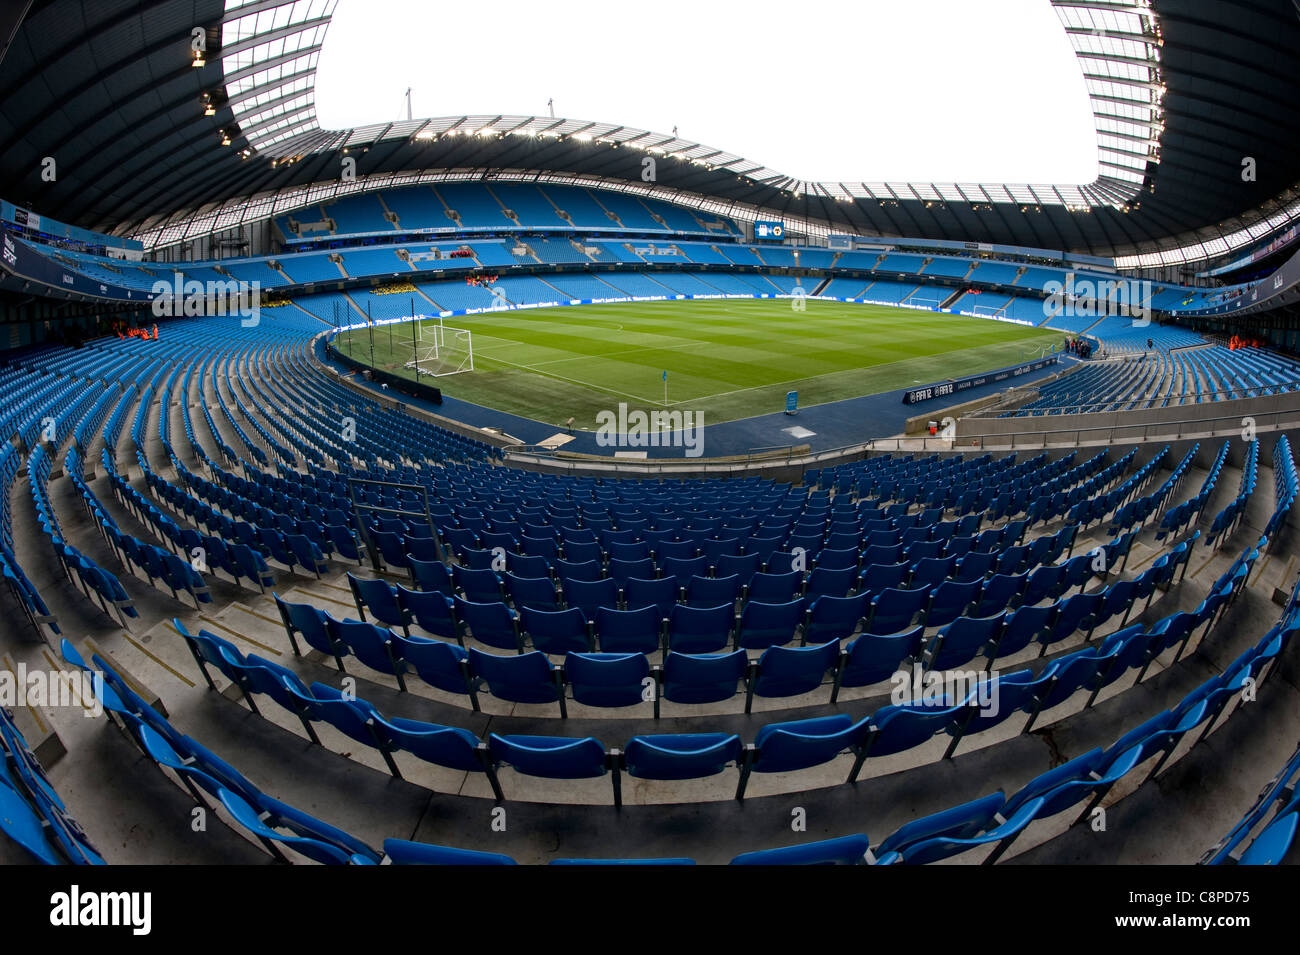 City Of Manchester Stadium: The City Of Manchester Stadium, Also Known As The Etihad